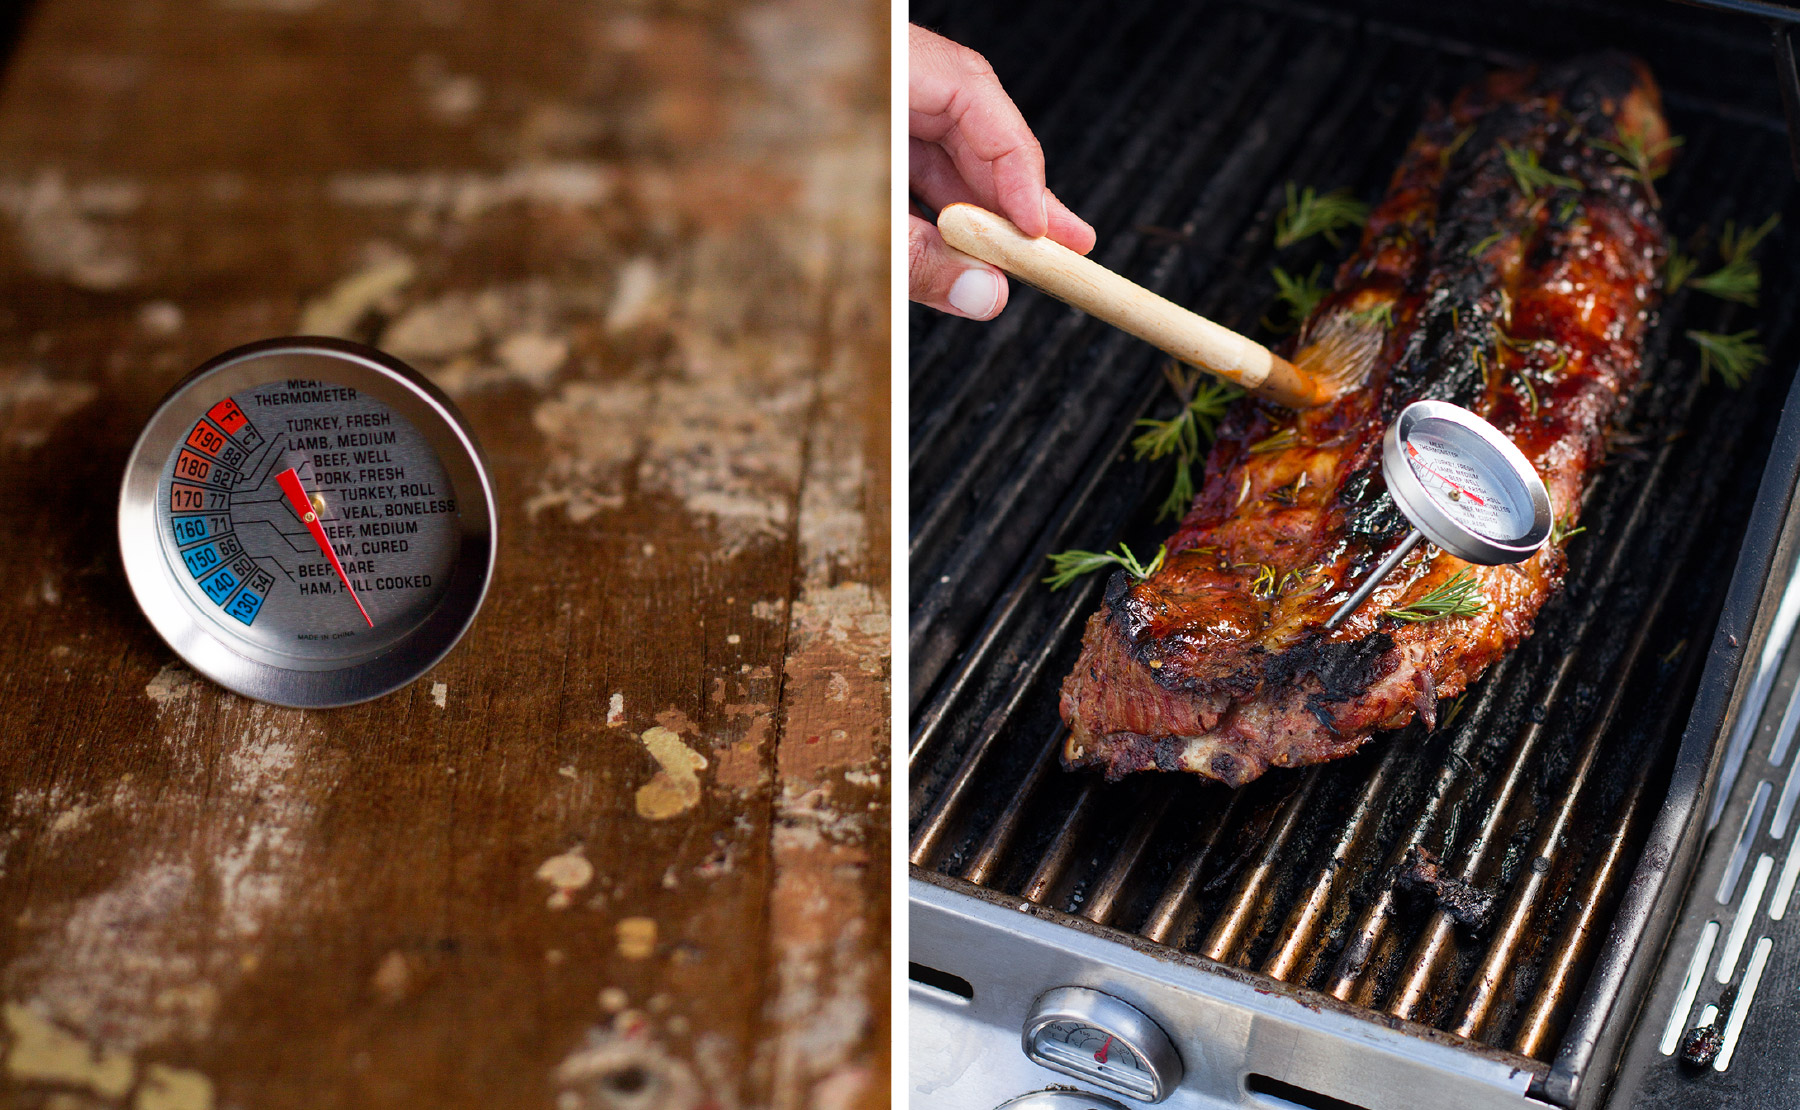 Checking ribs with meat thermometer